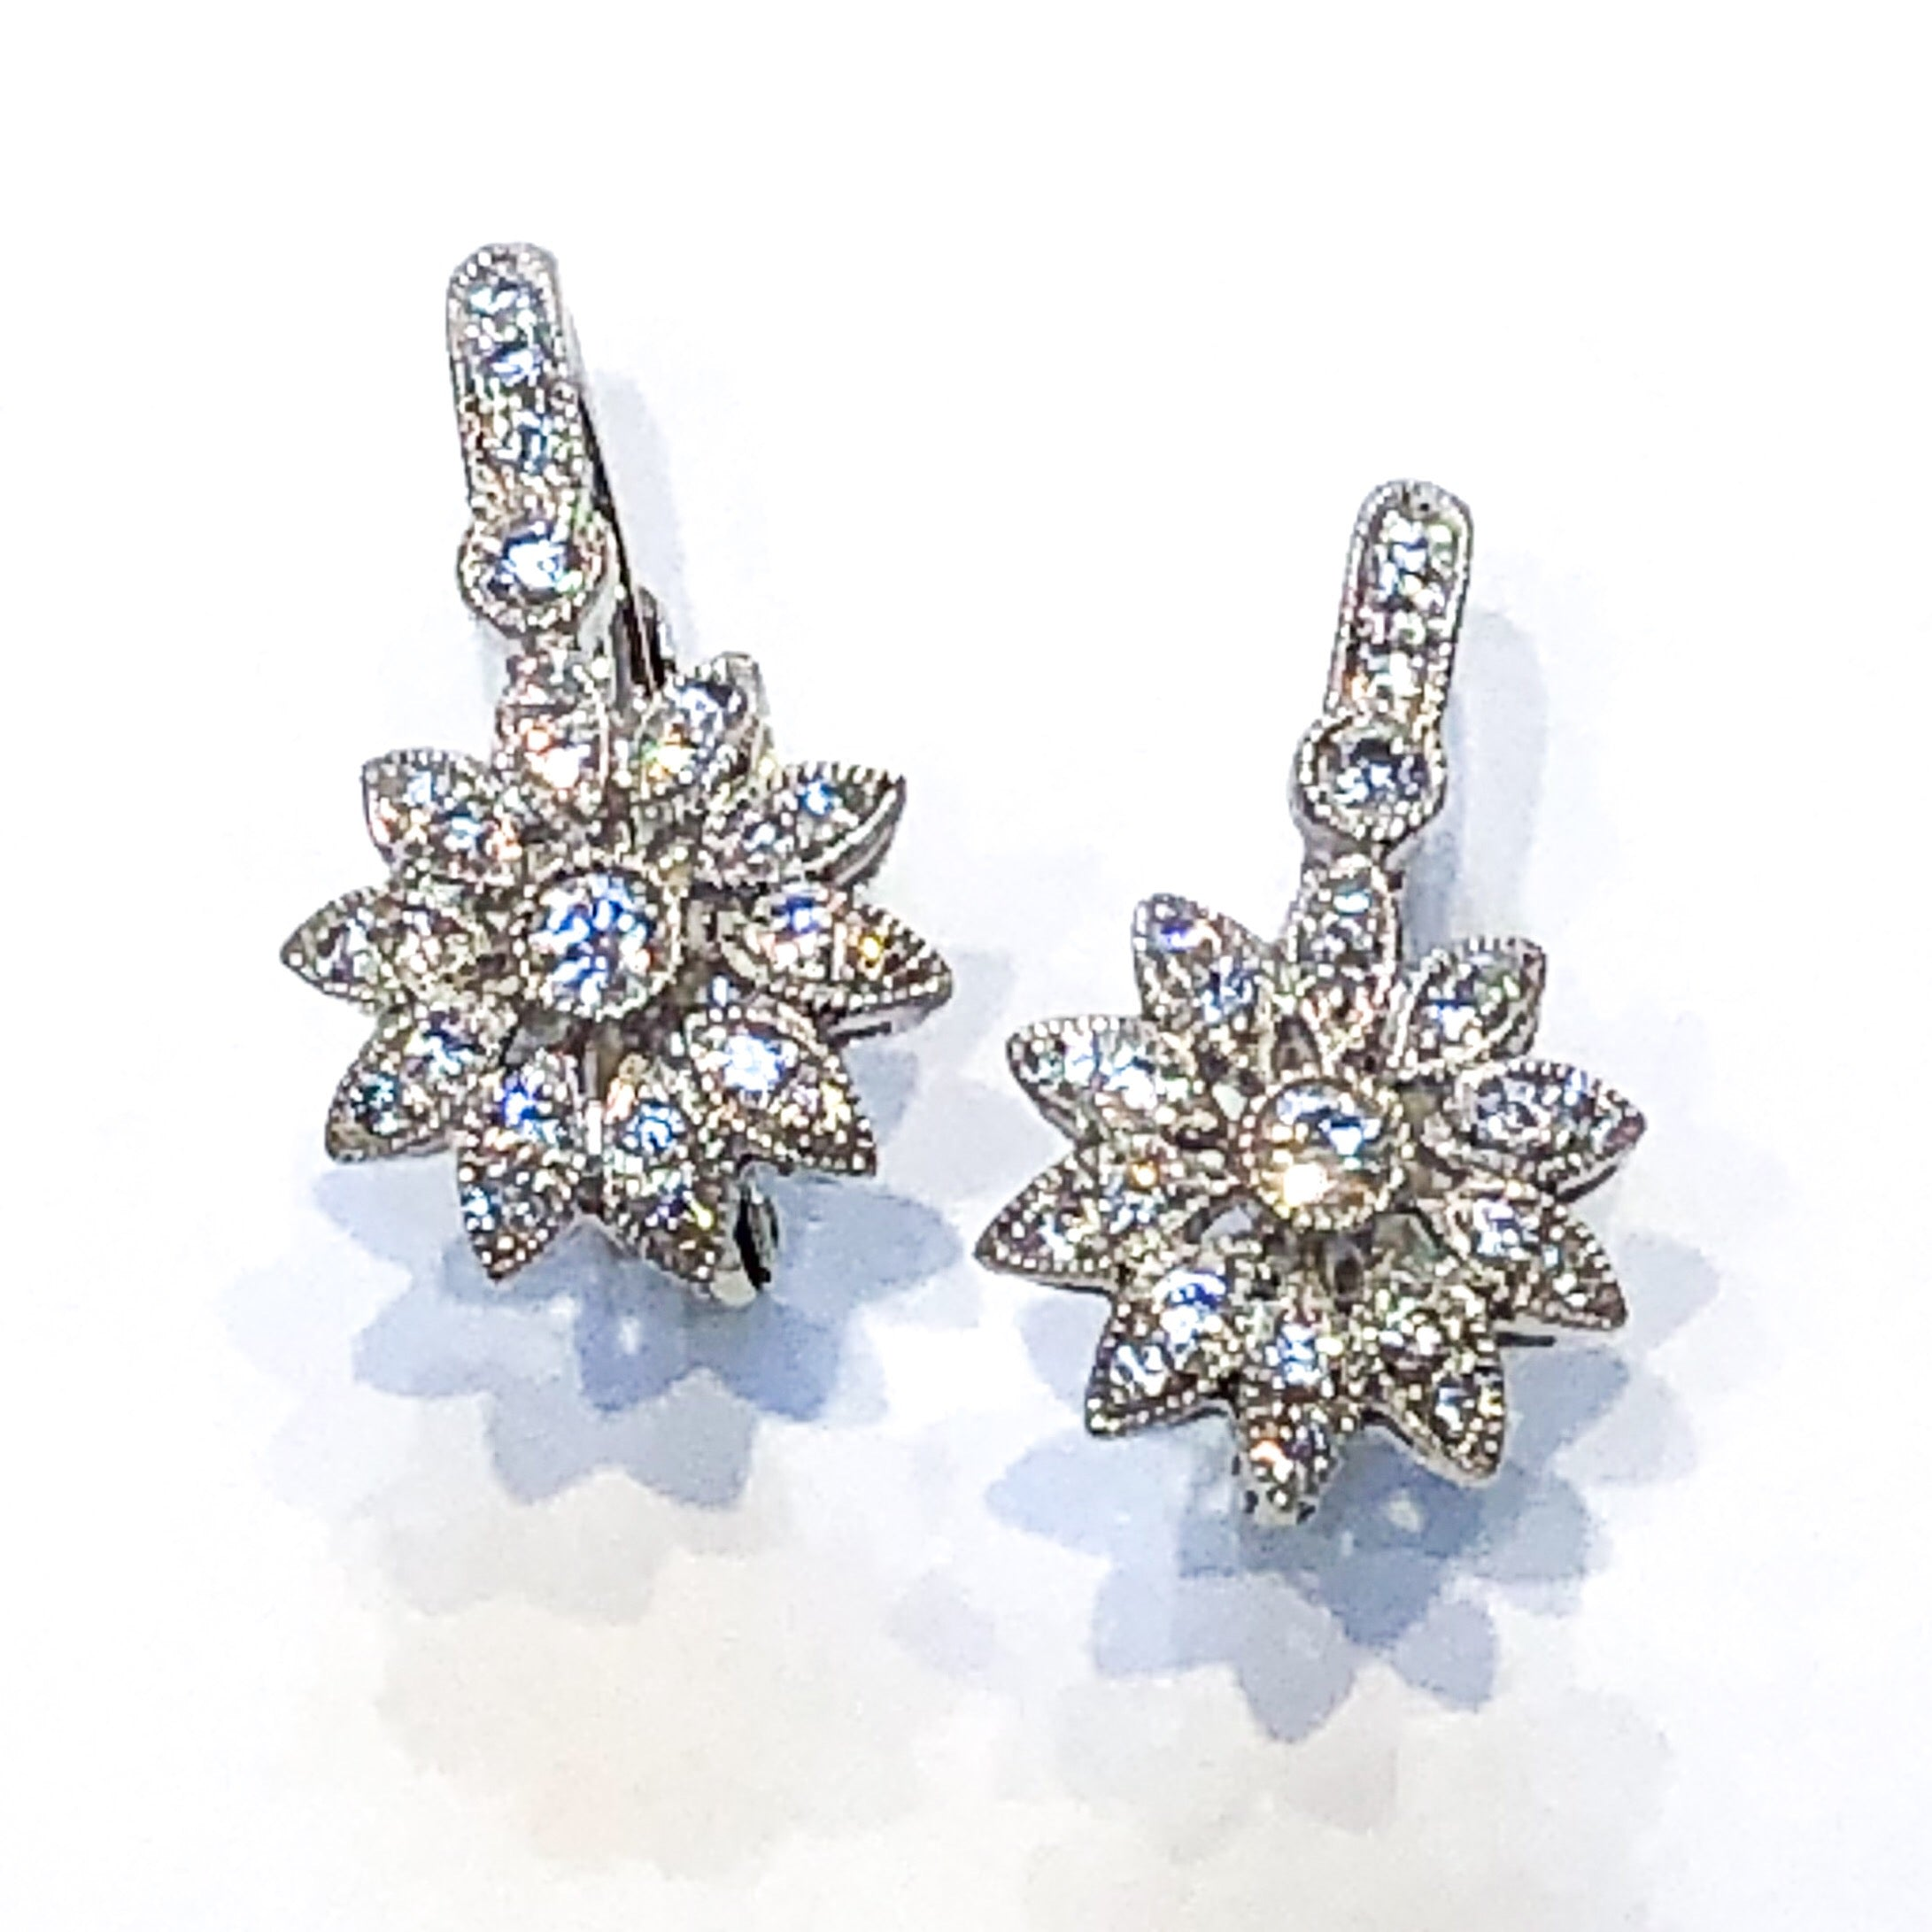 18kt White Gold and Diamond Pave Earrings